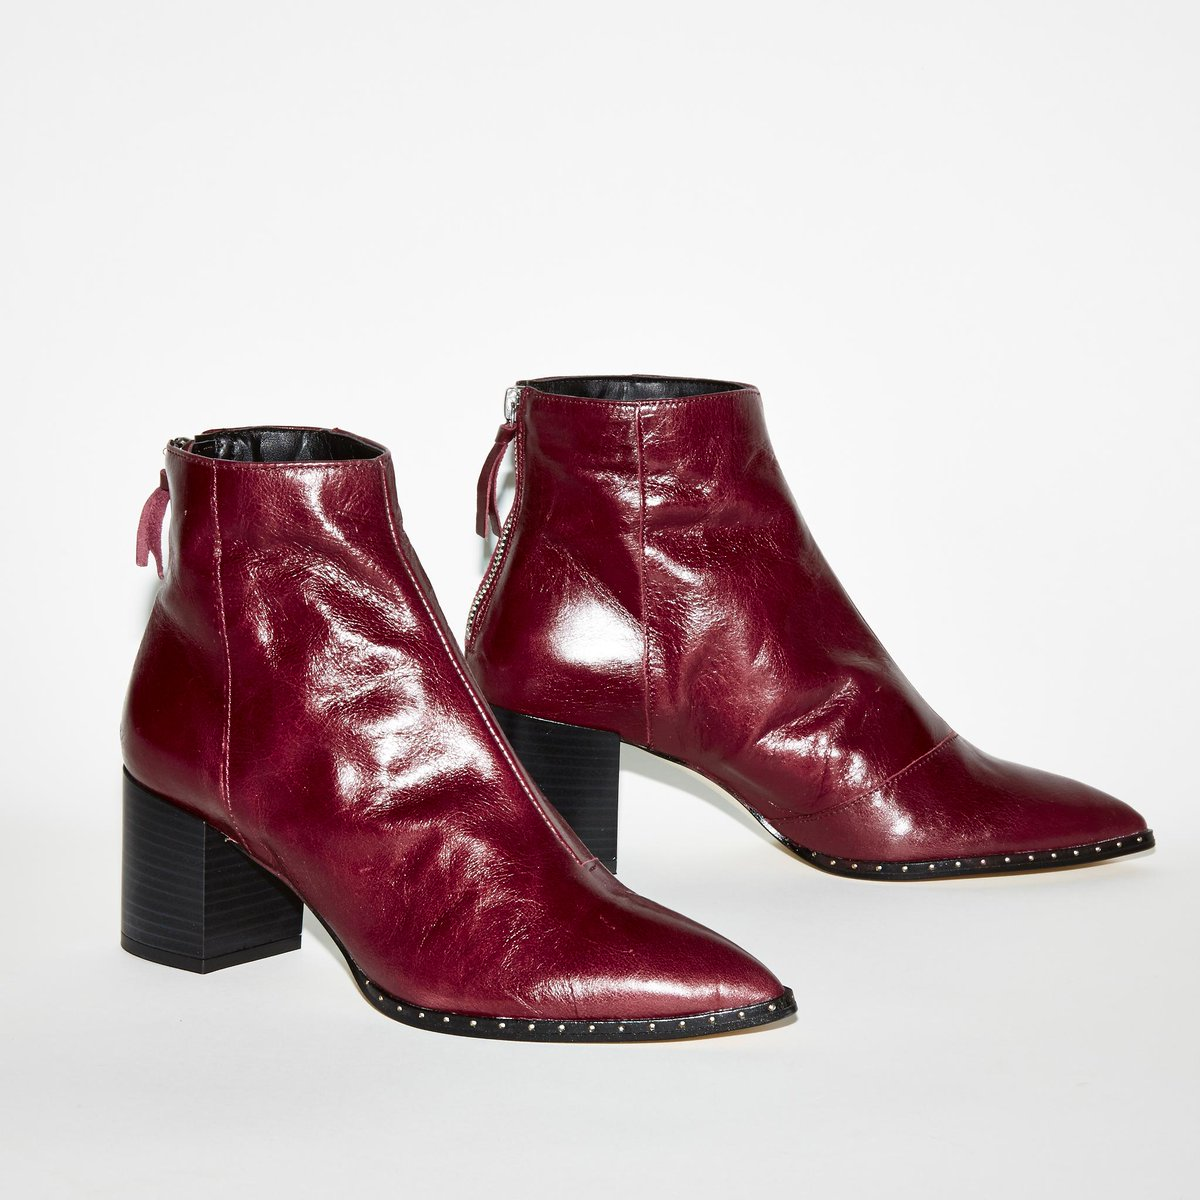 Aromatic Pointed Block Heel Boots In Burgundy Leather Are One Of Our Favourites Ownit2017 Http Bit Ly 2kcwnca Pic Twitter Fbvsq2cabt